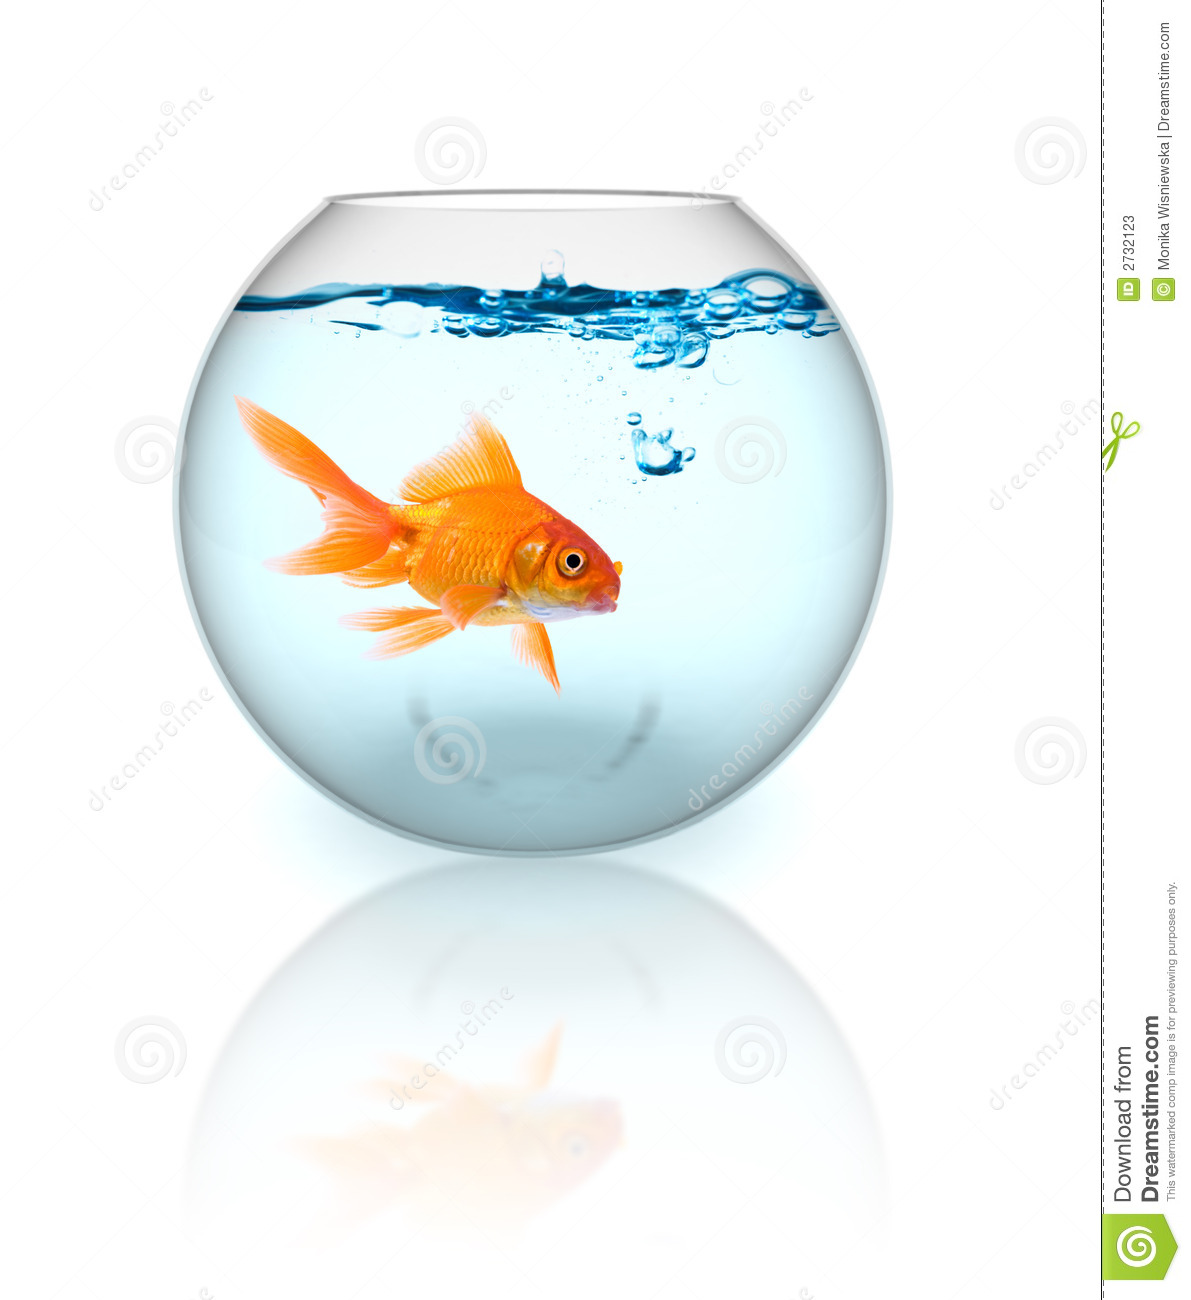 Goldfish in a bowl - photo#28